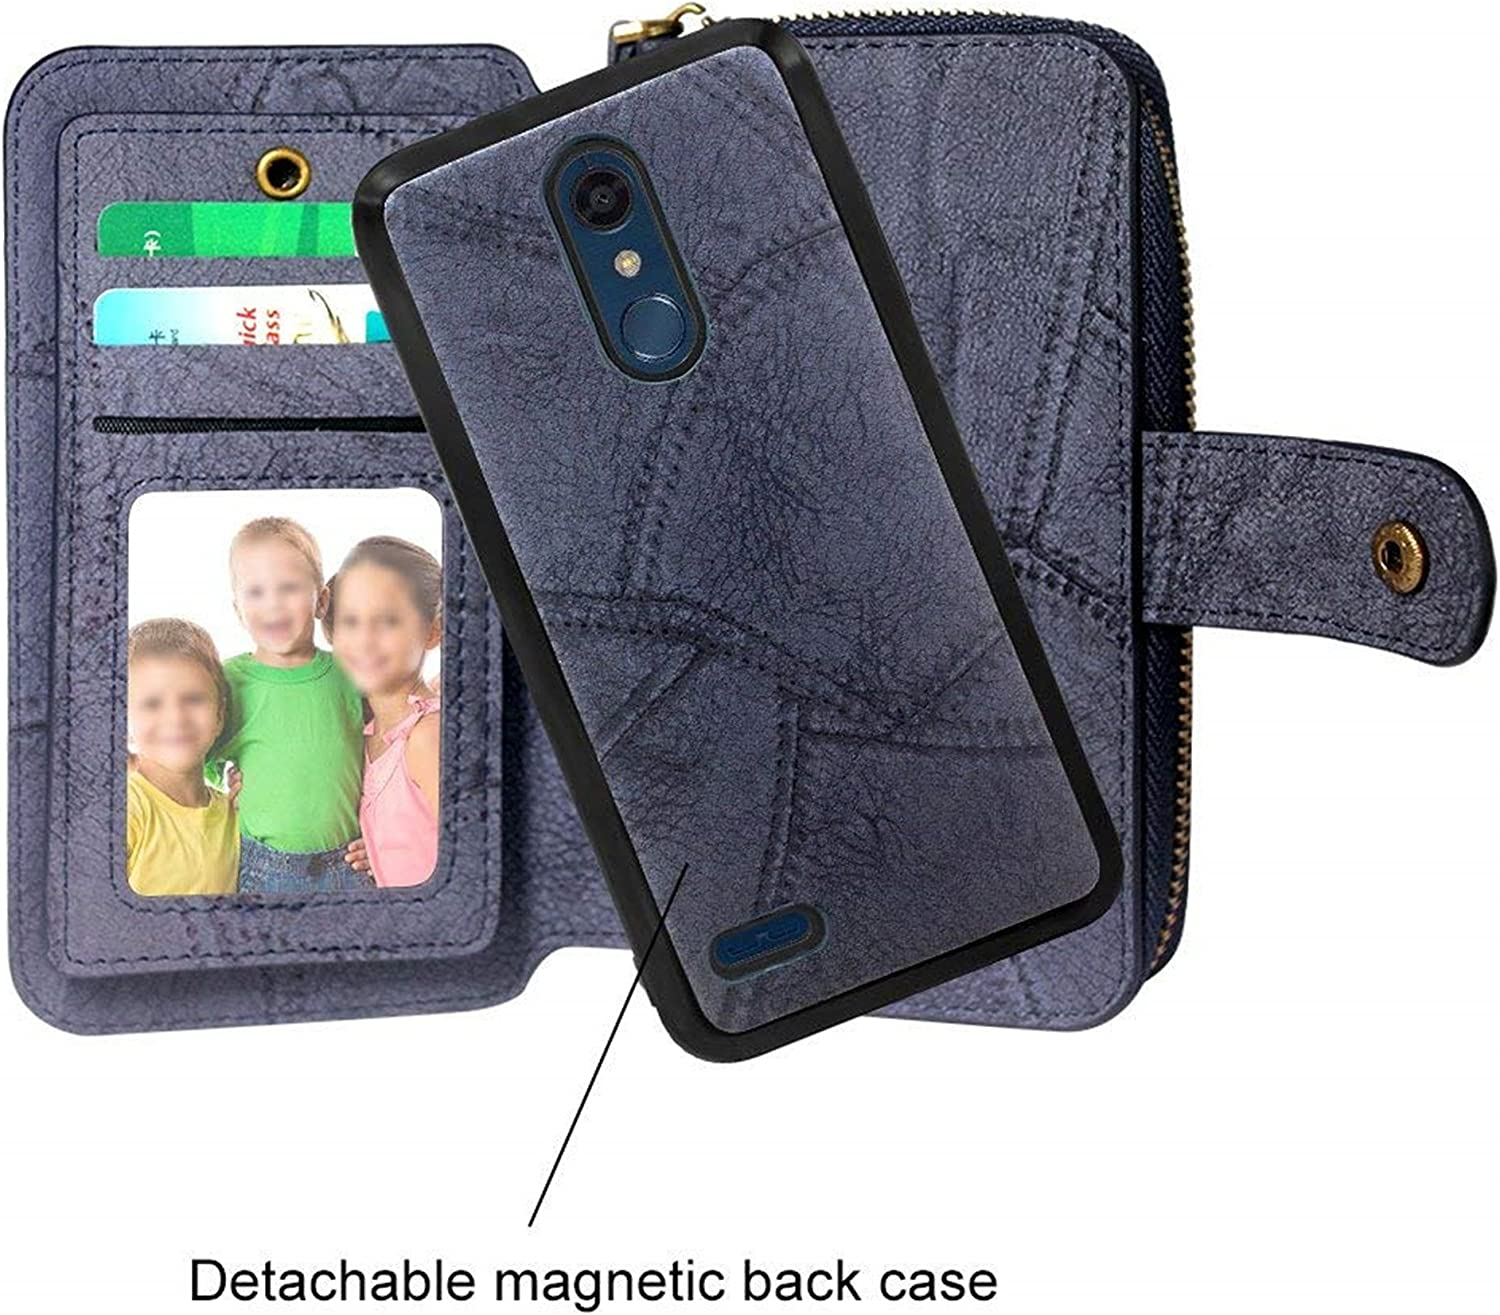 Spritech LG Stylo 4 Case,LG Q Stylus Case,Luxury Shockproof PU Leather Zipper Wallet Flip with Card Slots Wrist Strap Magnetic Detachable Back Cover for LG Stylo 4 2018//LG Q Stylus